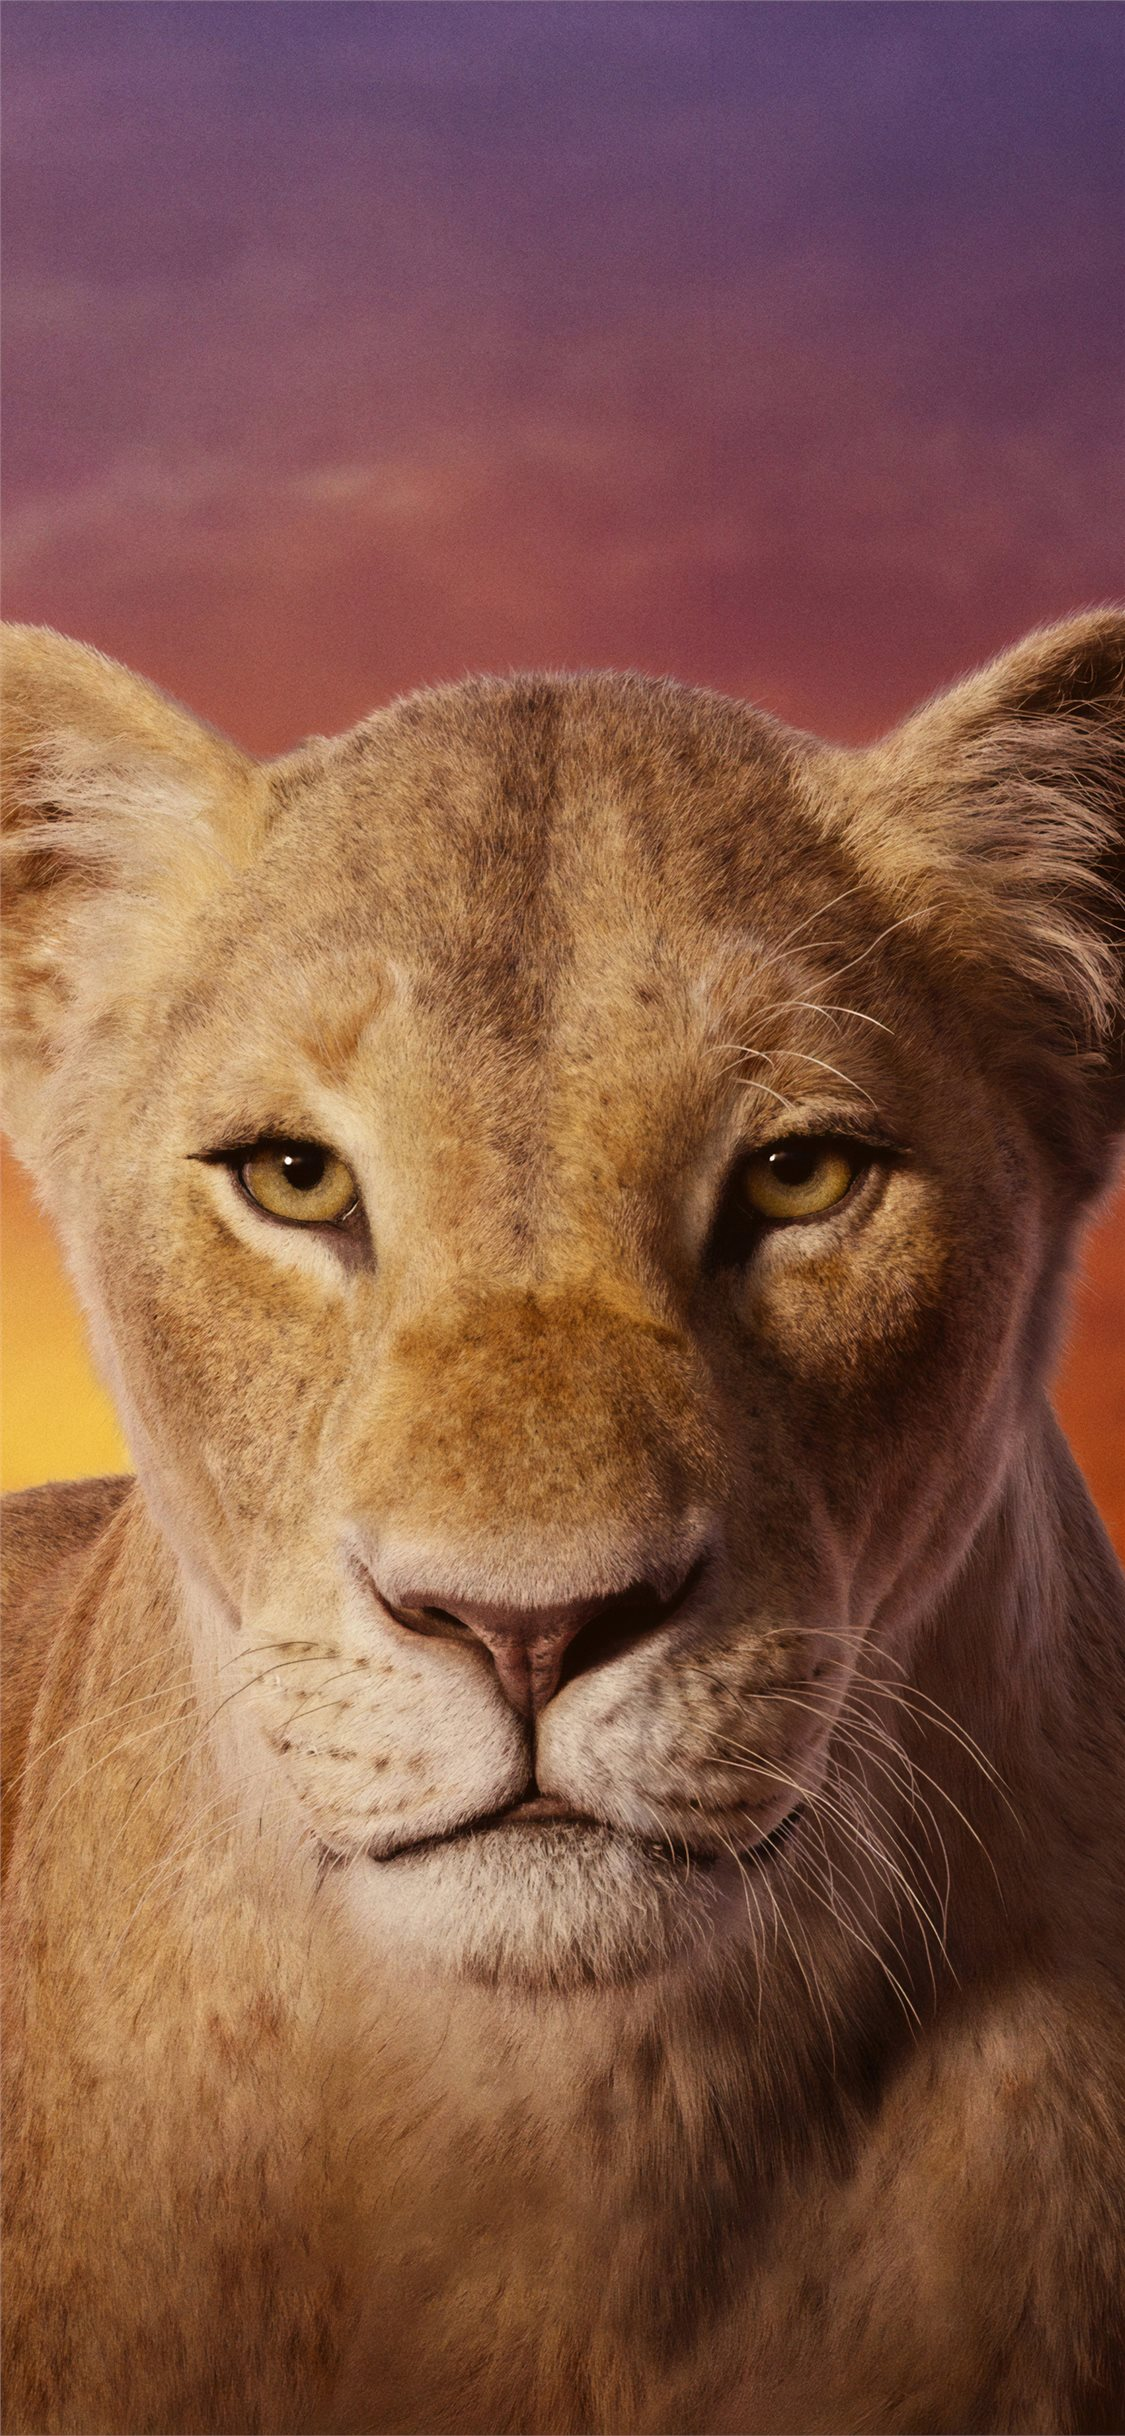 Beyonce As Nala The Lion King 2019 4k Iphone X Wallpapers